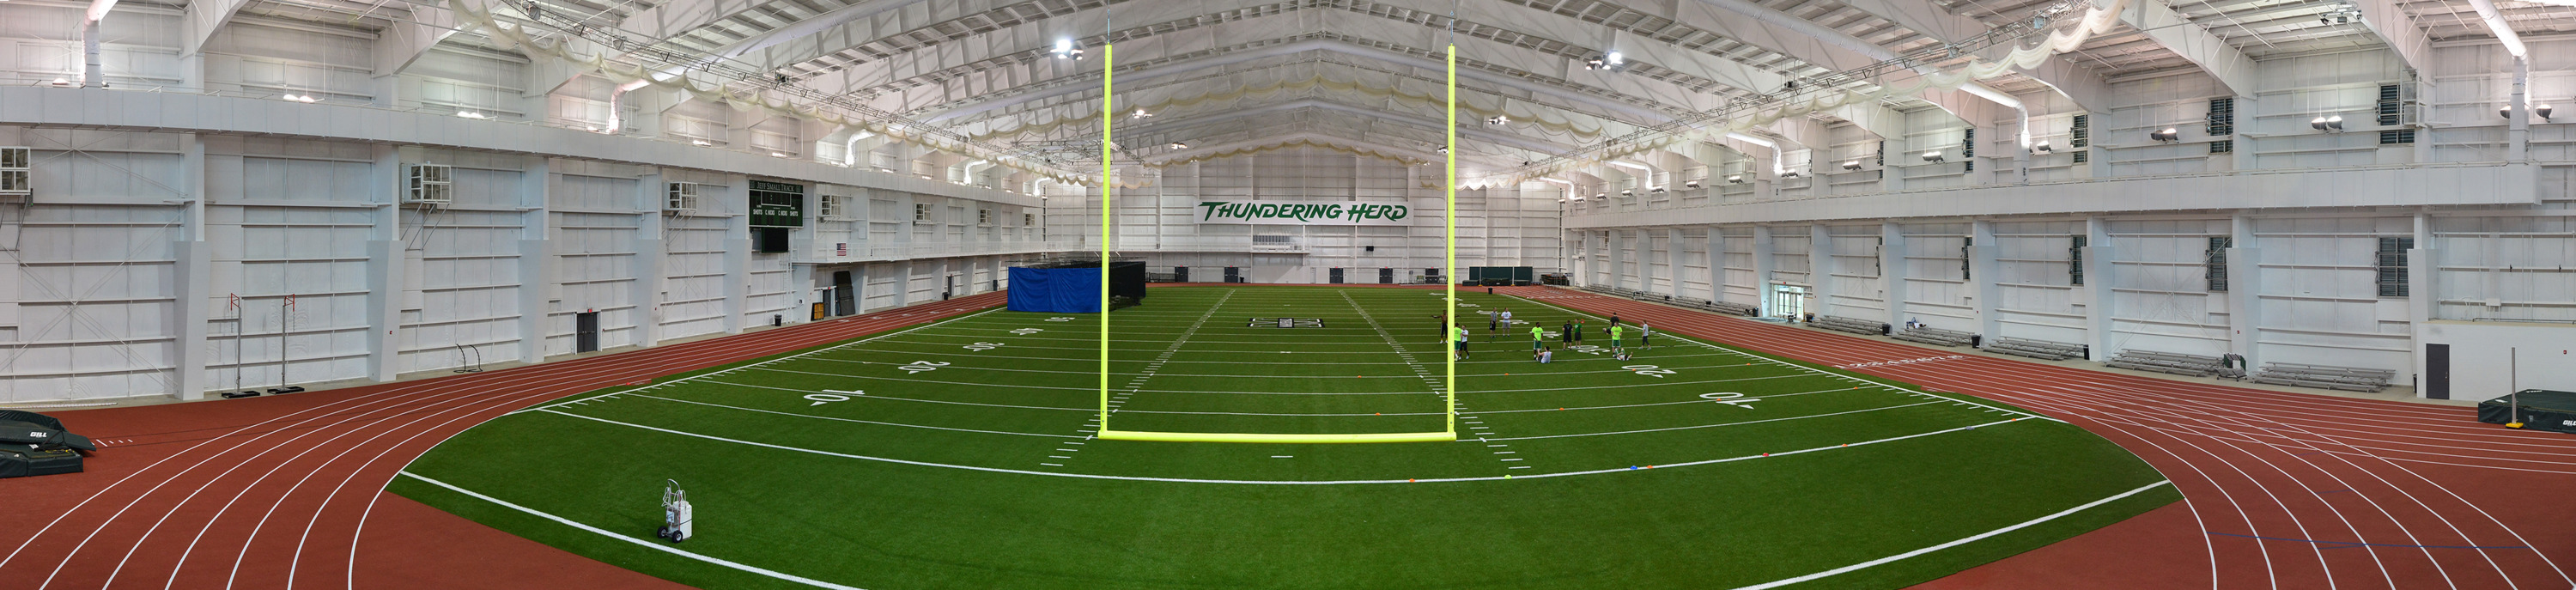 Chris Cline Indoor Athletic Complex